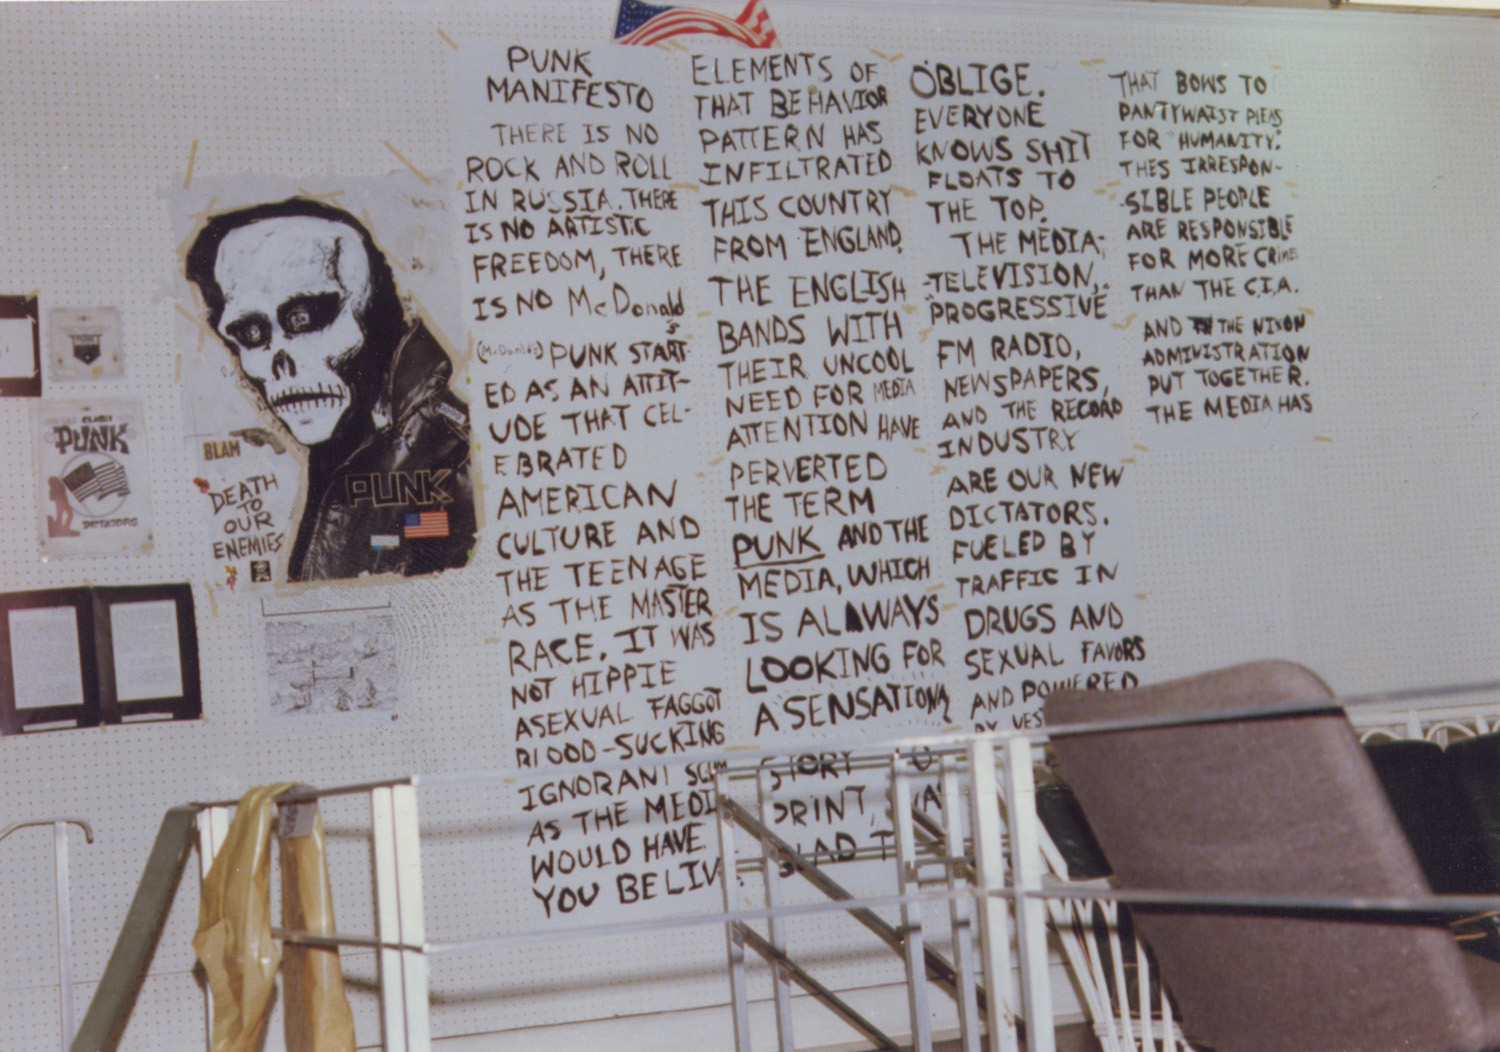 Punk manifesto by Legs McNeil of Punk Magazine of the walls of the exhibition